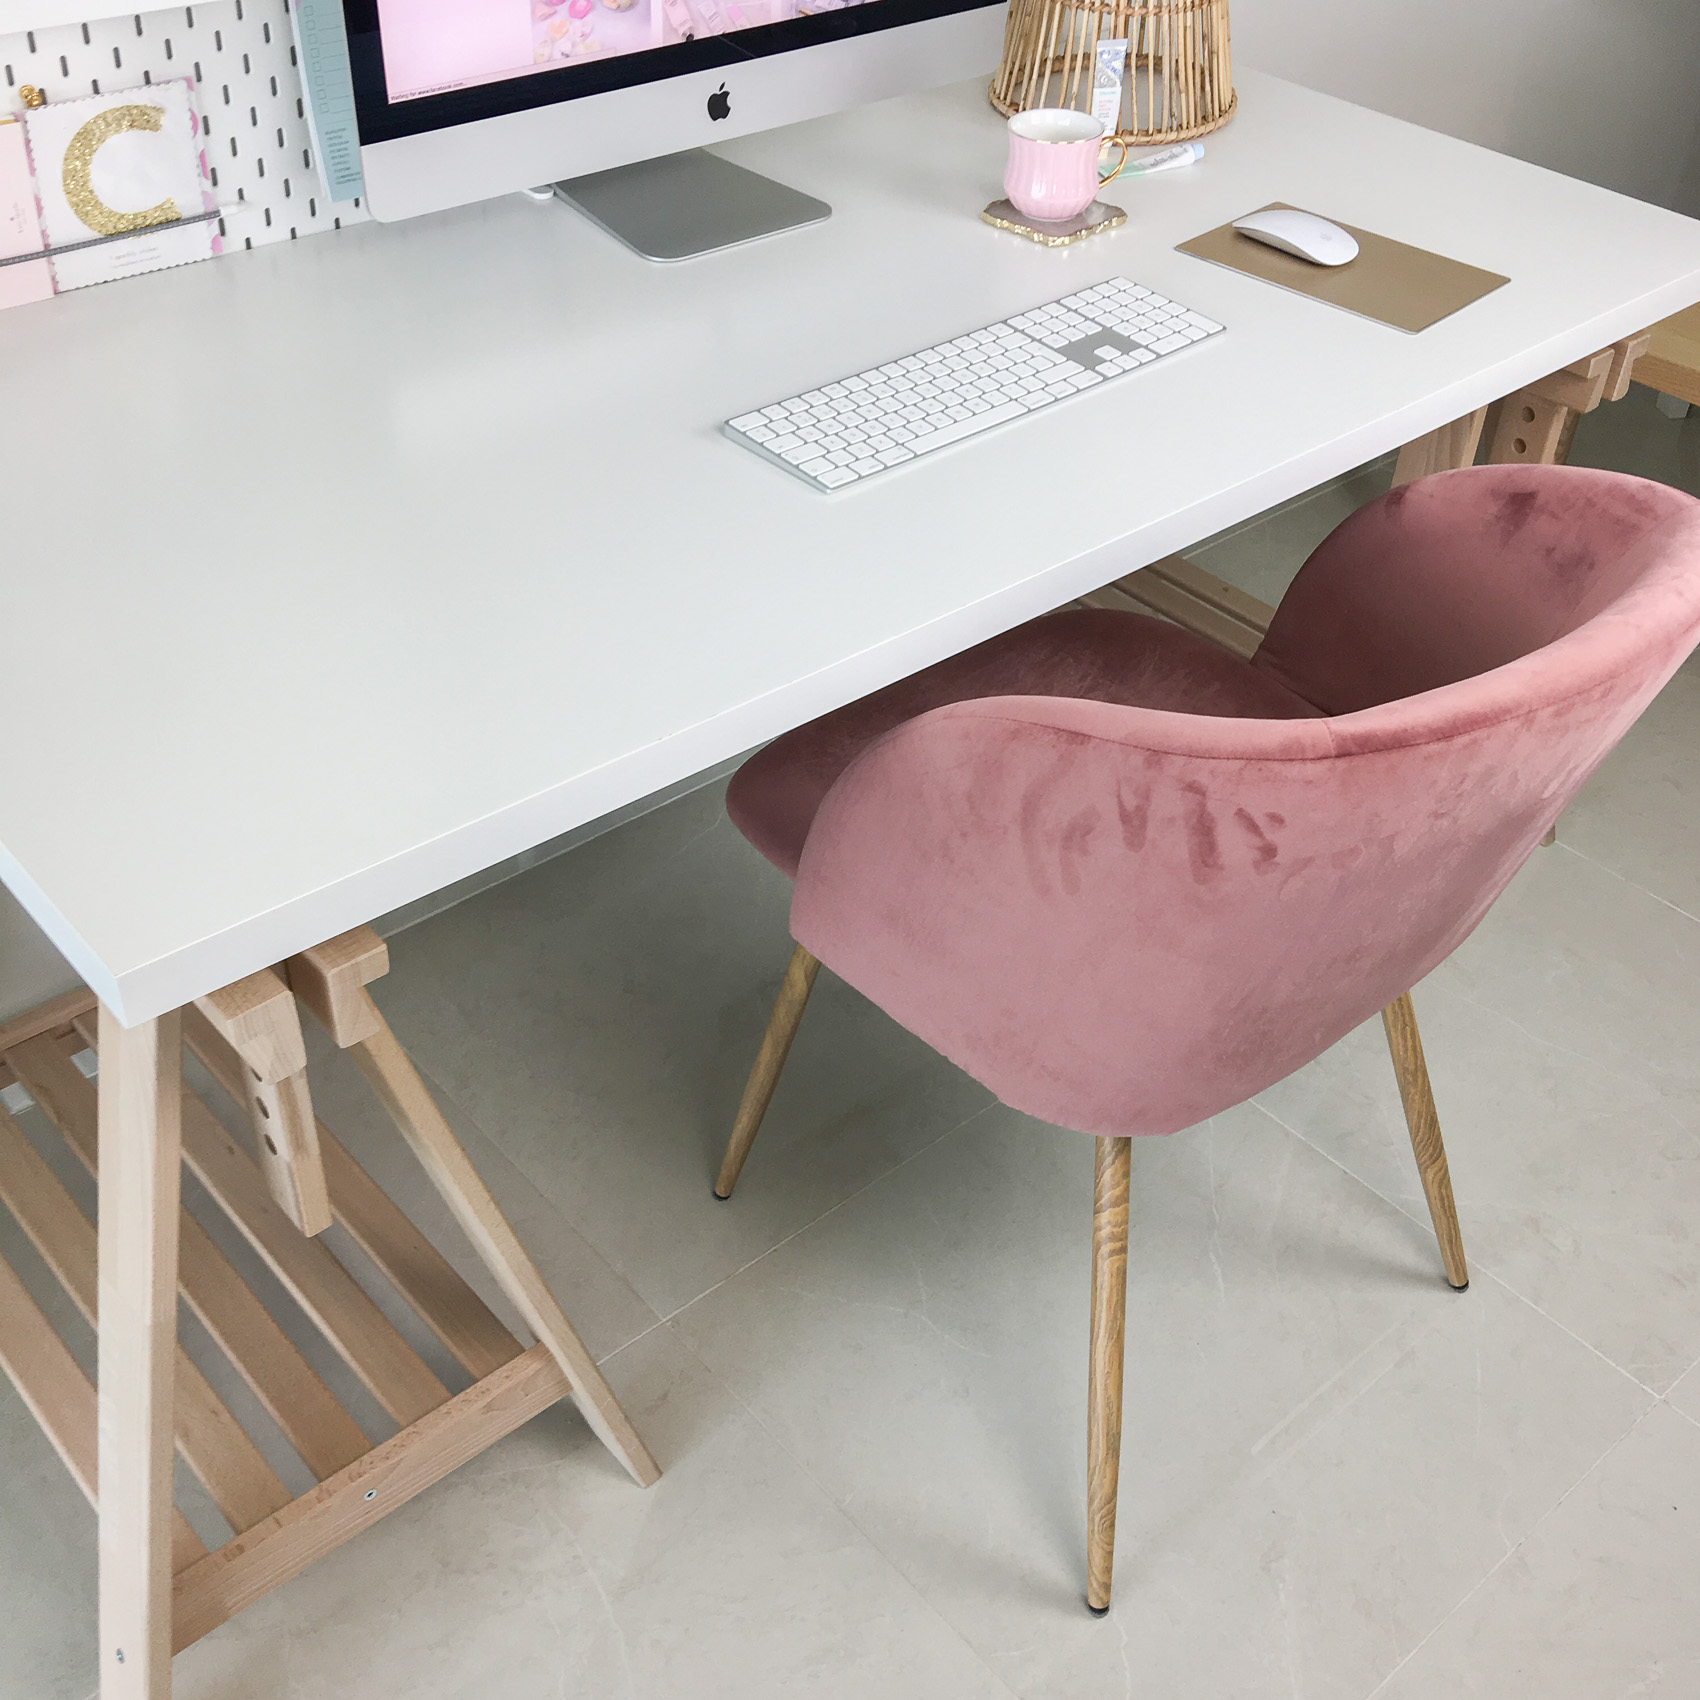 My New Desk Set Up At Home Claire Baker